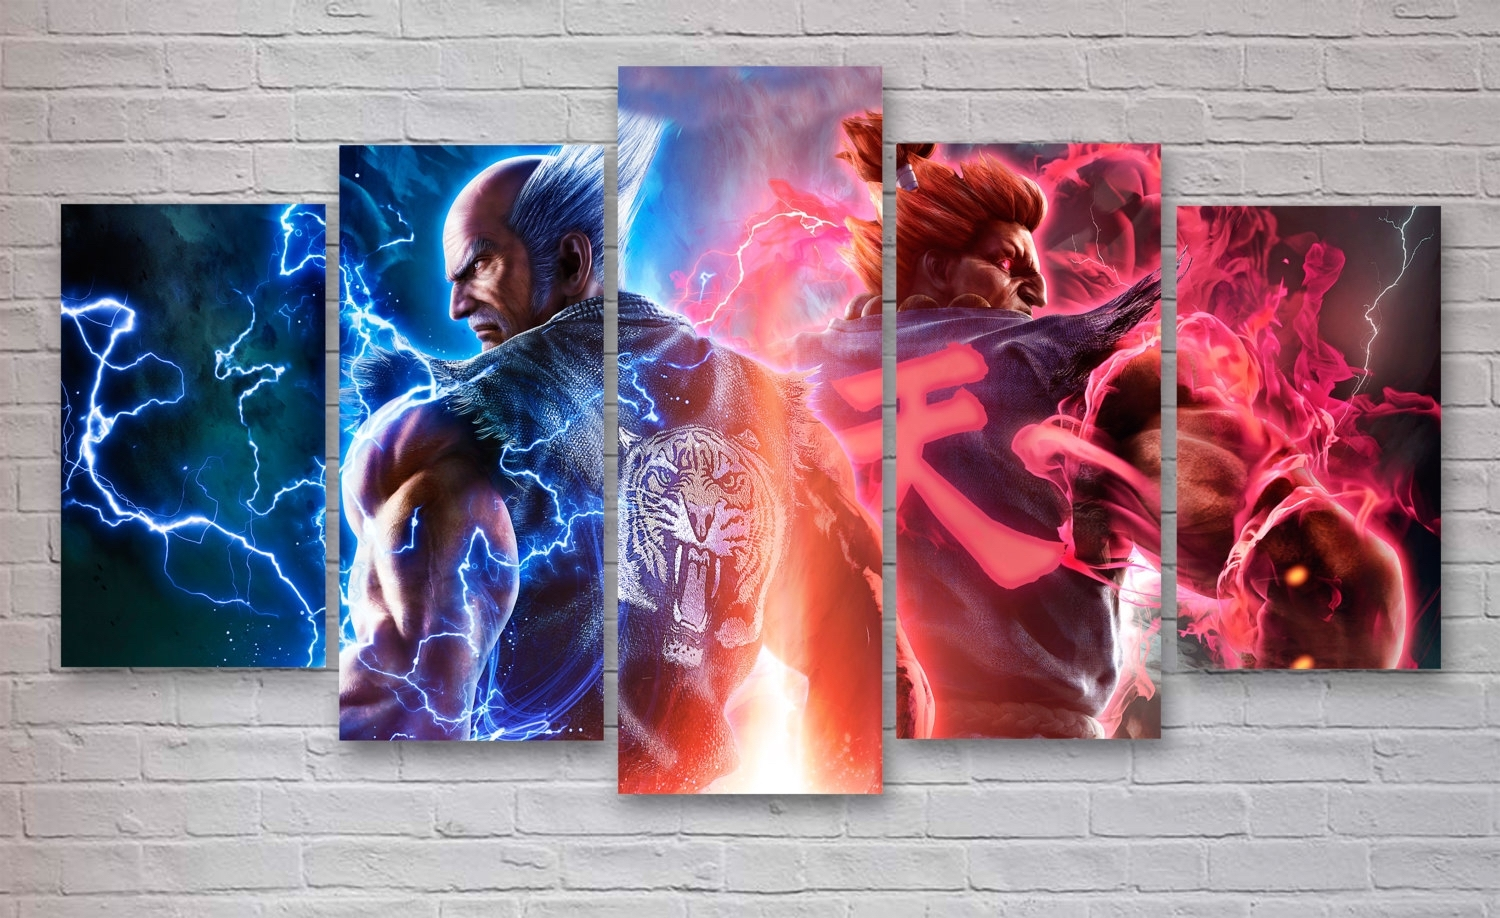 Tekken 7 Gaming 5 Panel / Piece Canvas – Wall Art – Office In 2017 Gaming Canvas Wall Art (Gallery 4 of 15)